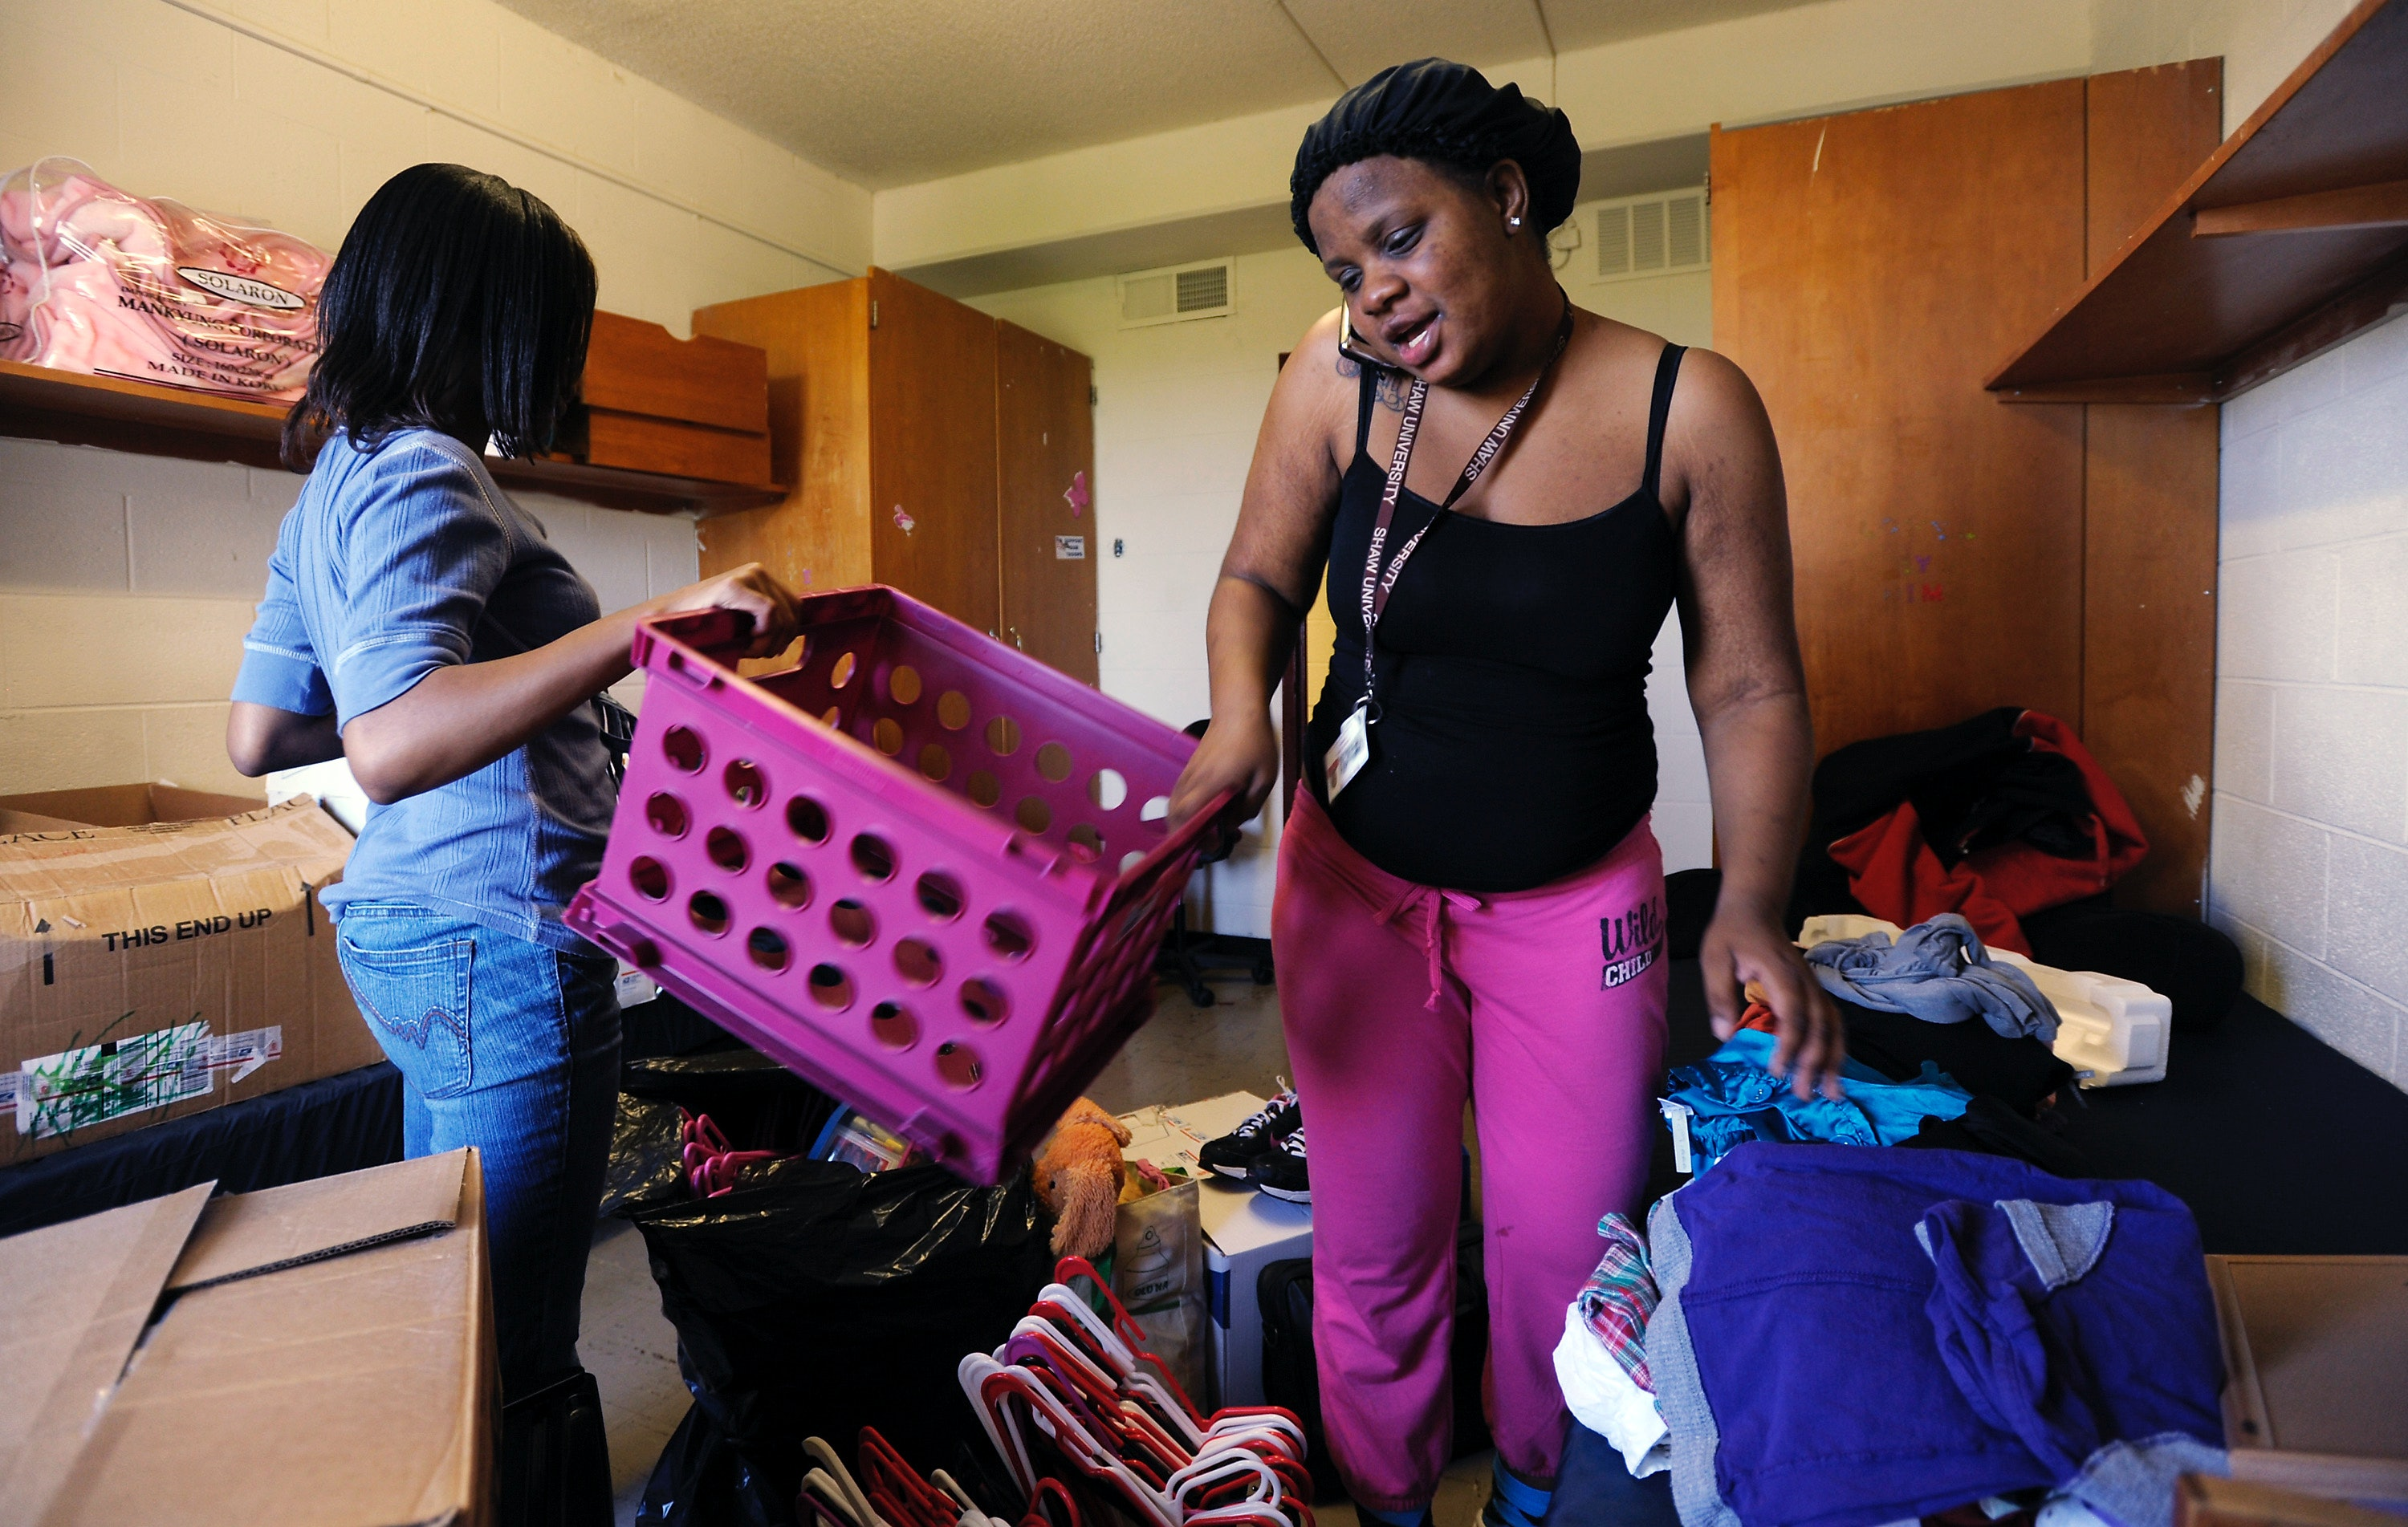 University Of Central Florida Calls Bathrooms U0026 Closets Dorm Rooms, And  Students Are Not Pleased Part 5